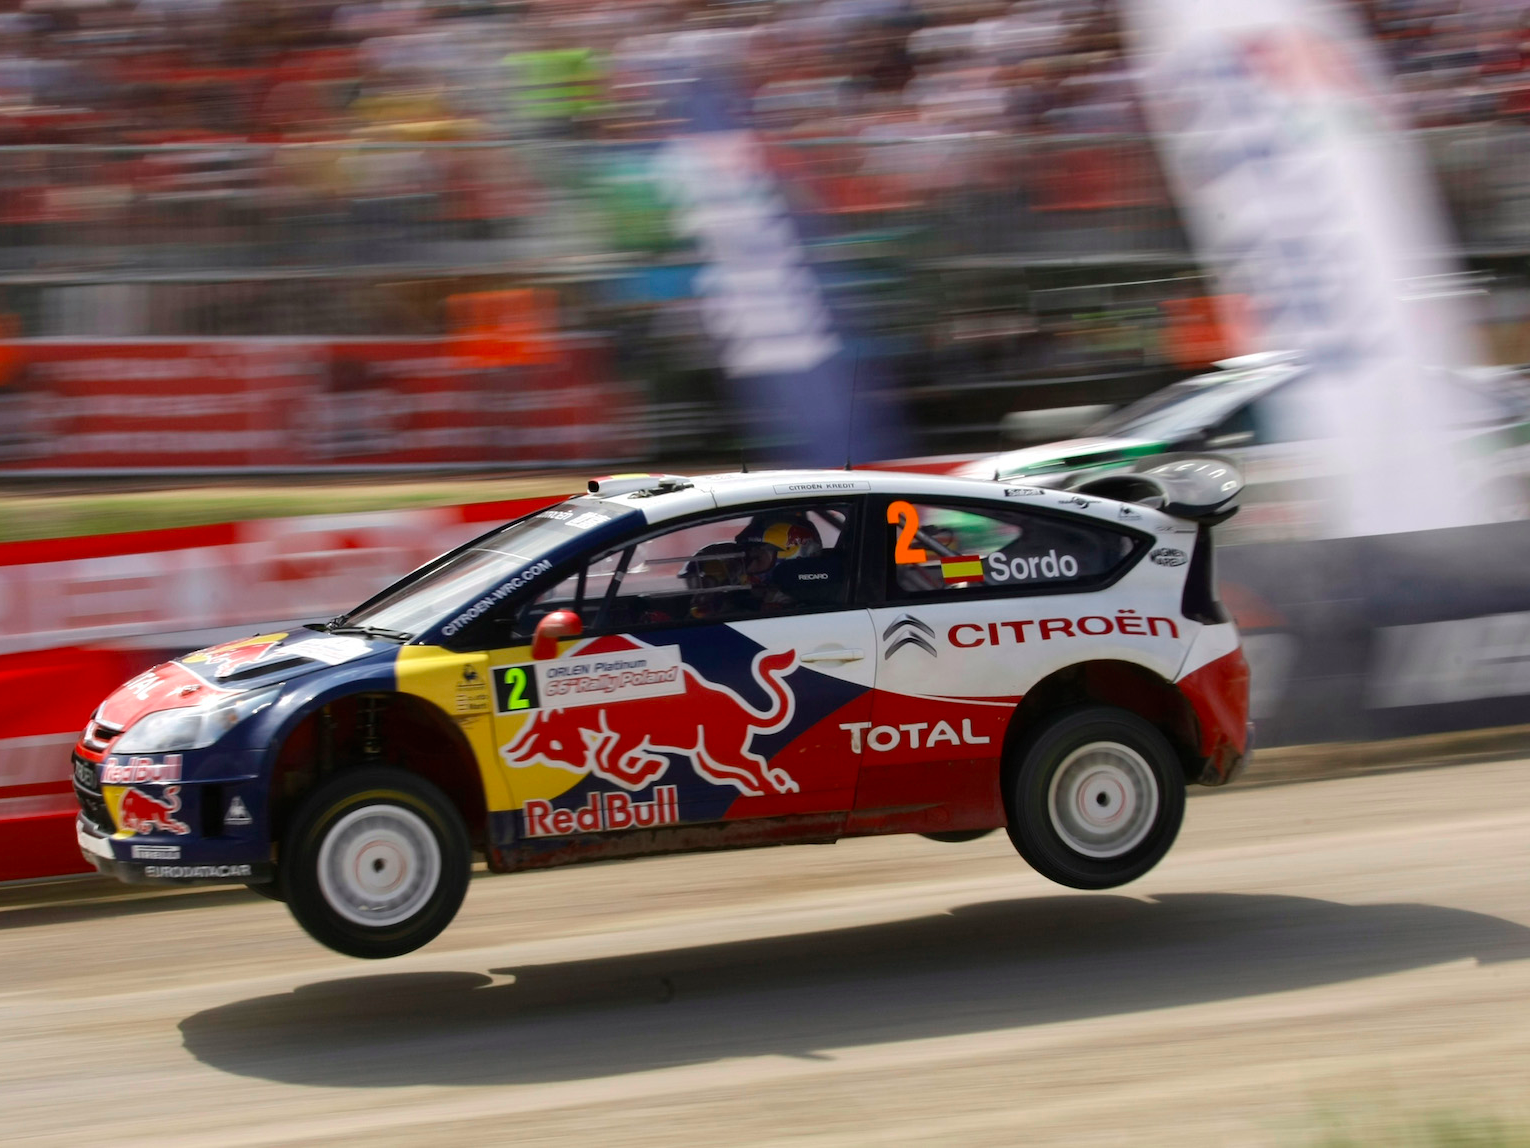 Dani Sordo of Spain and co-driver and compatriot Marc Marti in their Citroen WRC drive for the second place in the 66th Rally Poland in Mikolajki June 28, 2009.